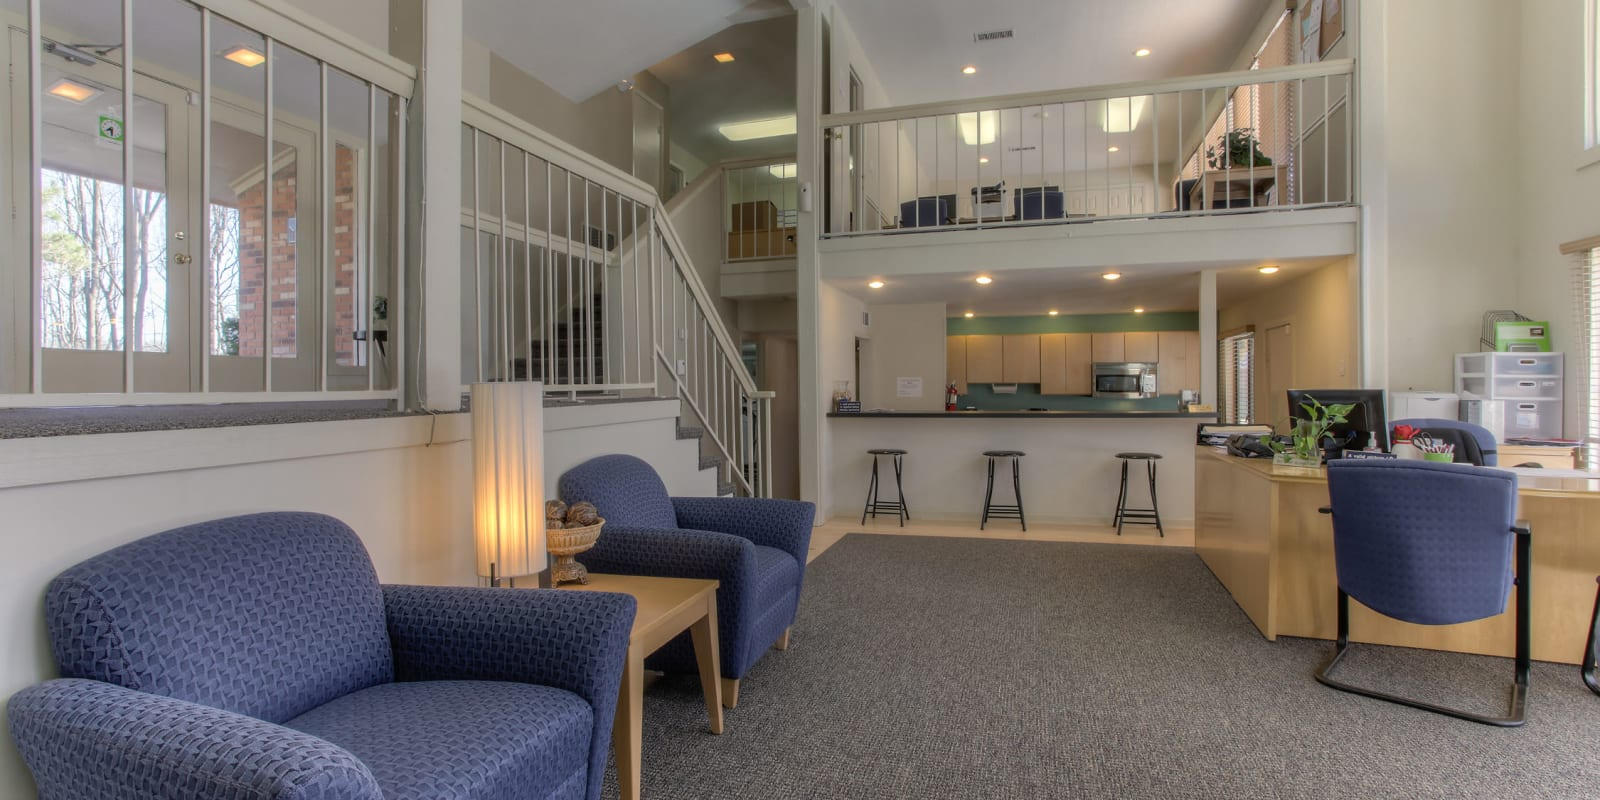 A two-story clubhouse with a resident kitchen at Enclave at North Point Apartment Homes in Winston Salem, North Carolina